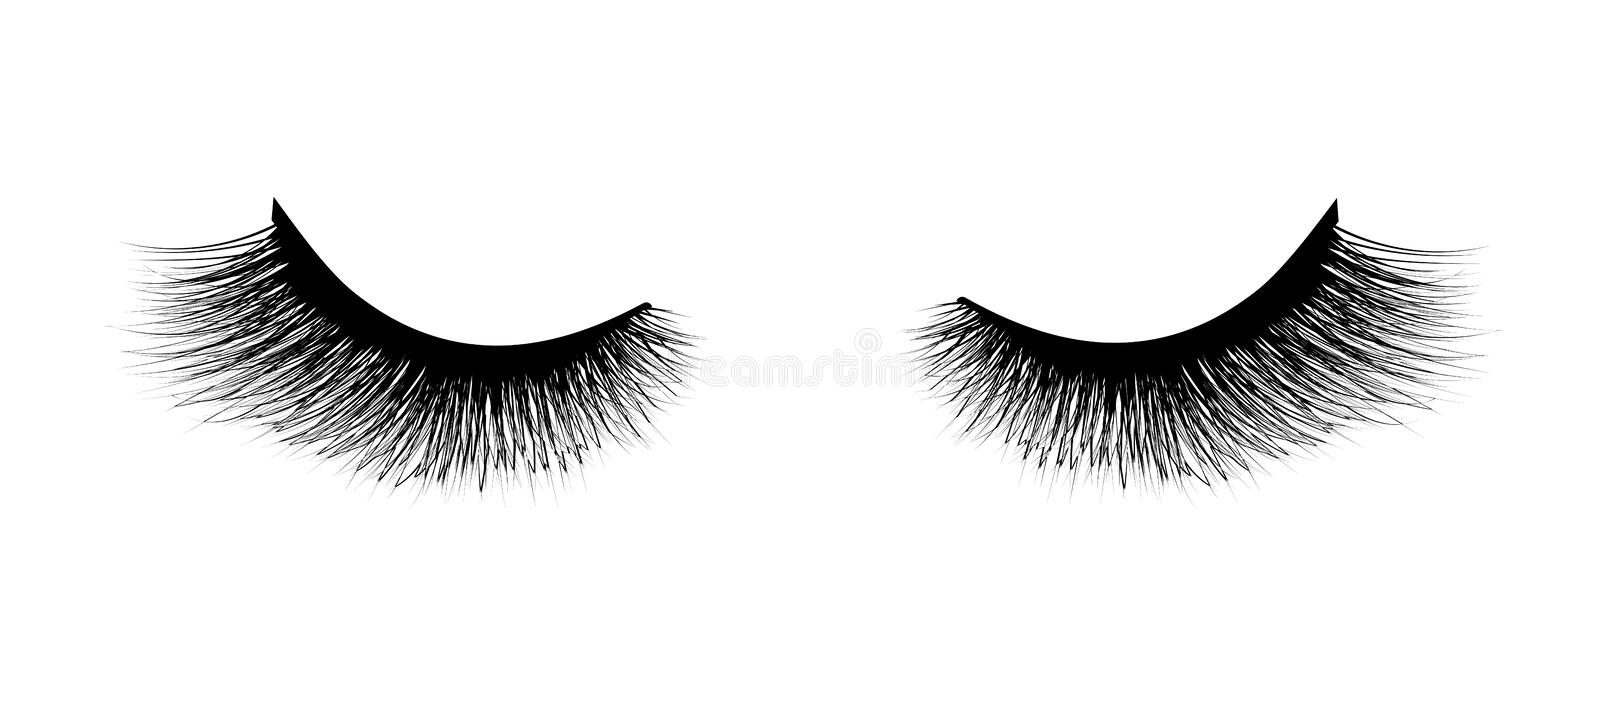 Download Eyelash Extension A Beautiful Make Up Thick Fuzzy Cilia Mascara For